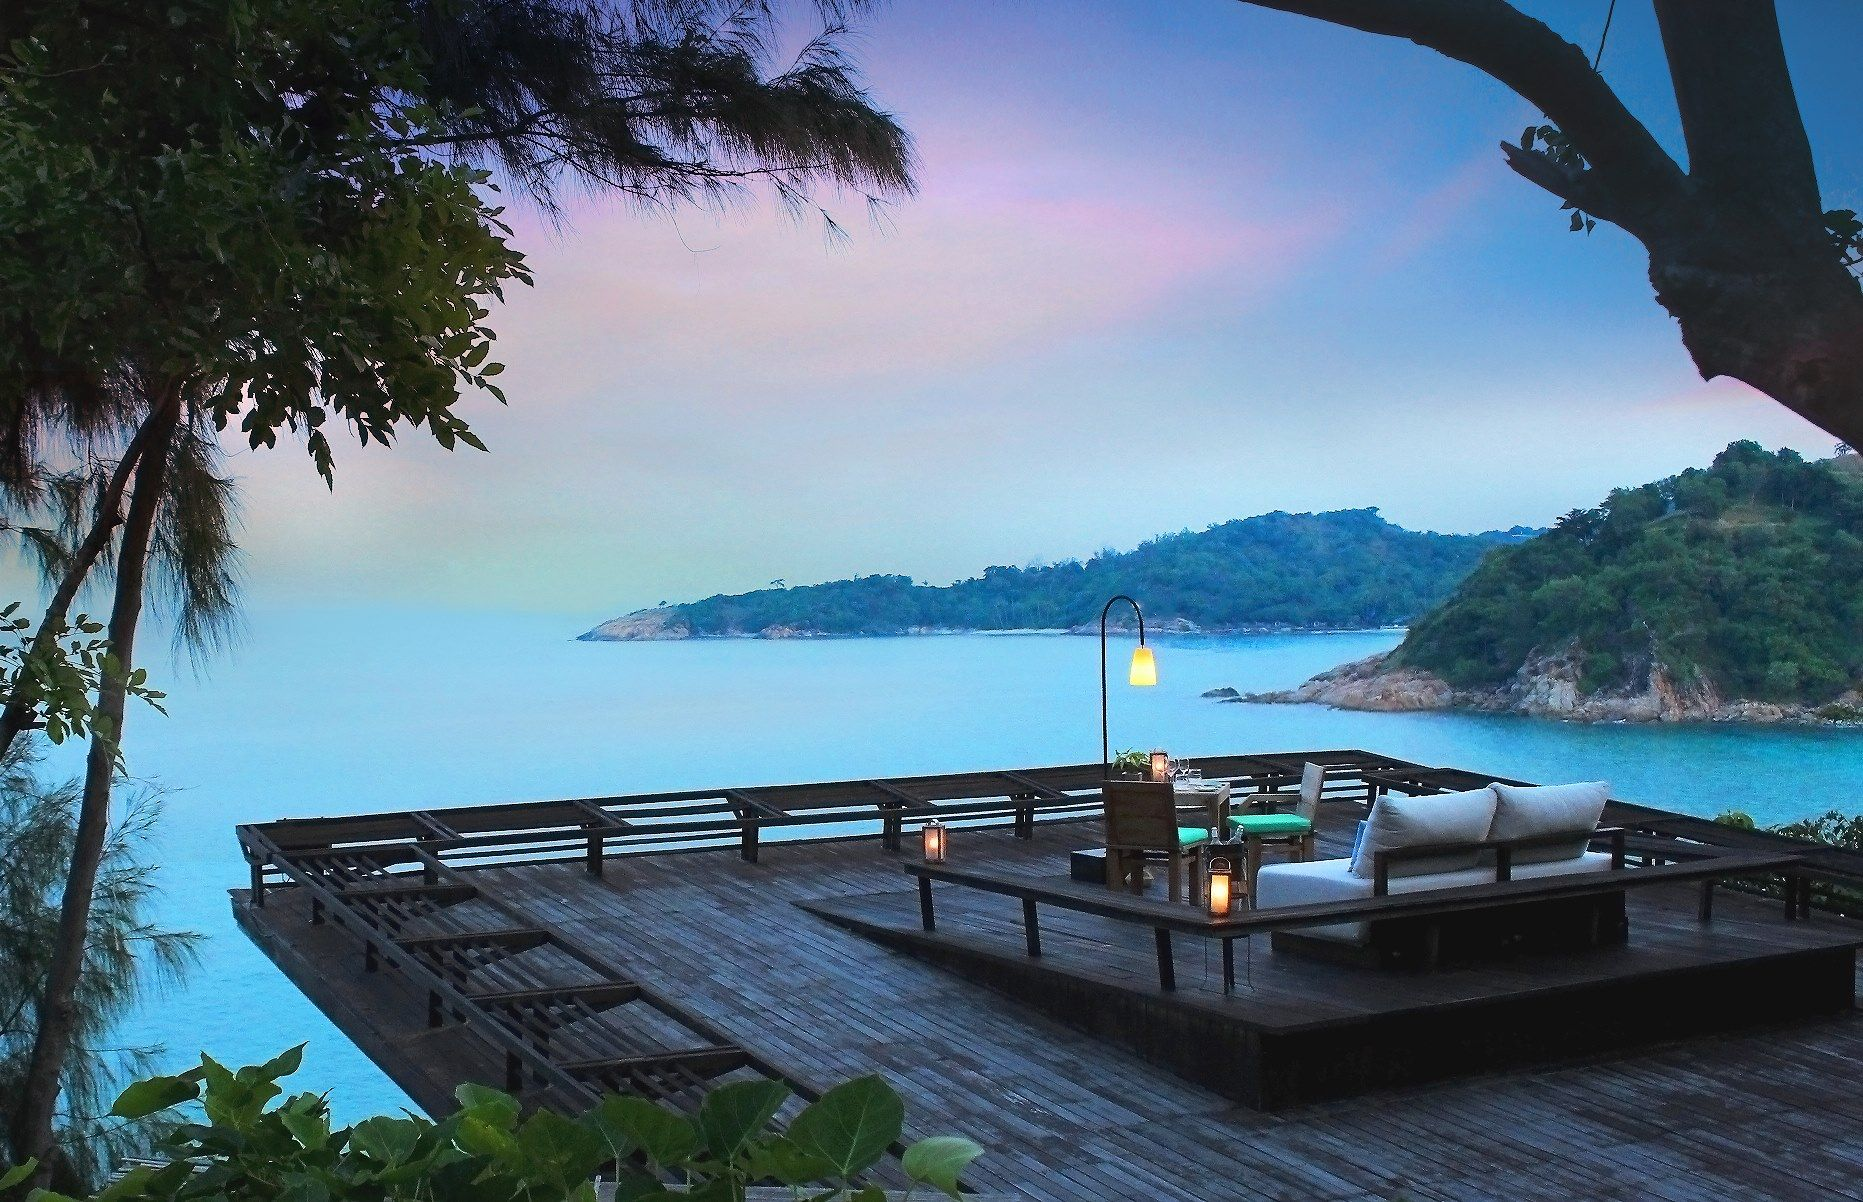 Dining on the Rocks - Table 99 | Dining Venues | Pinterest | Dining ...